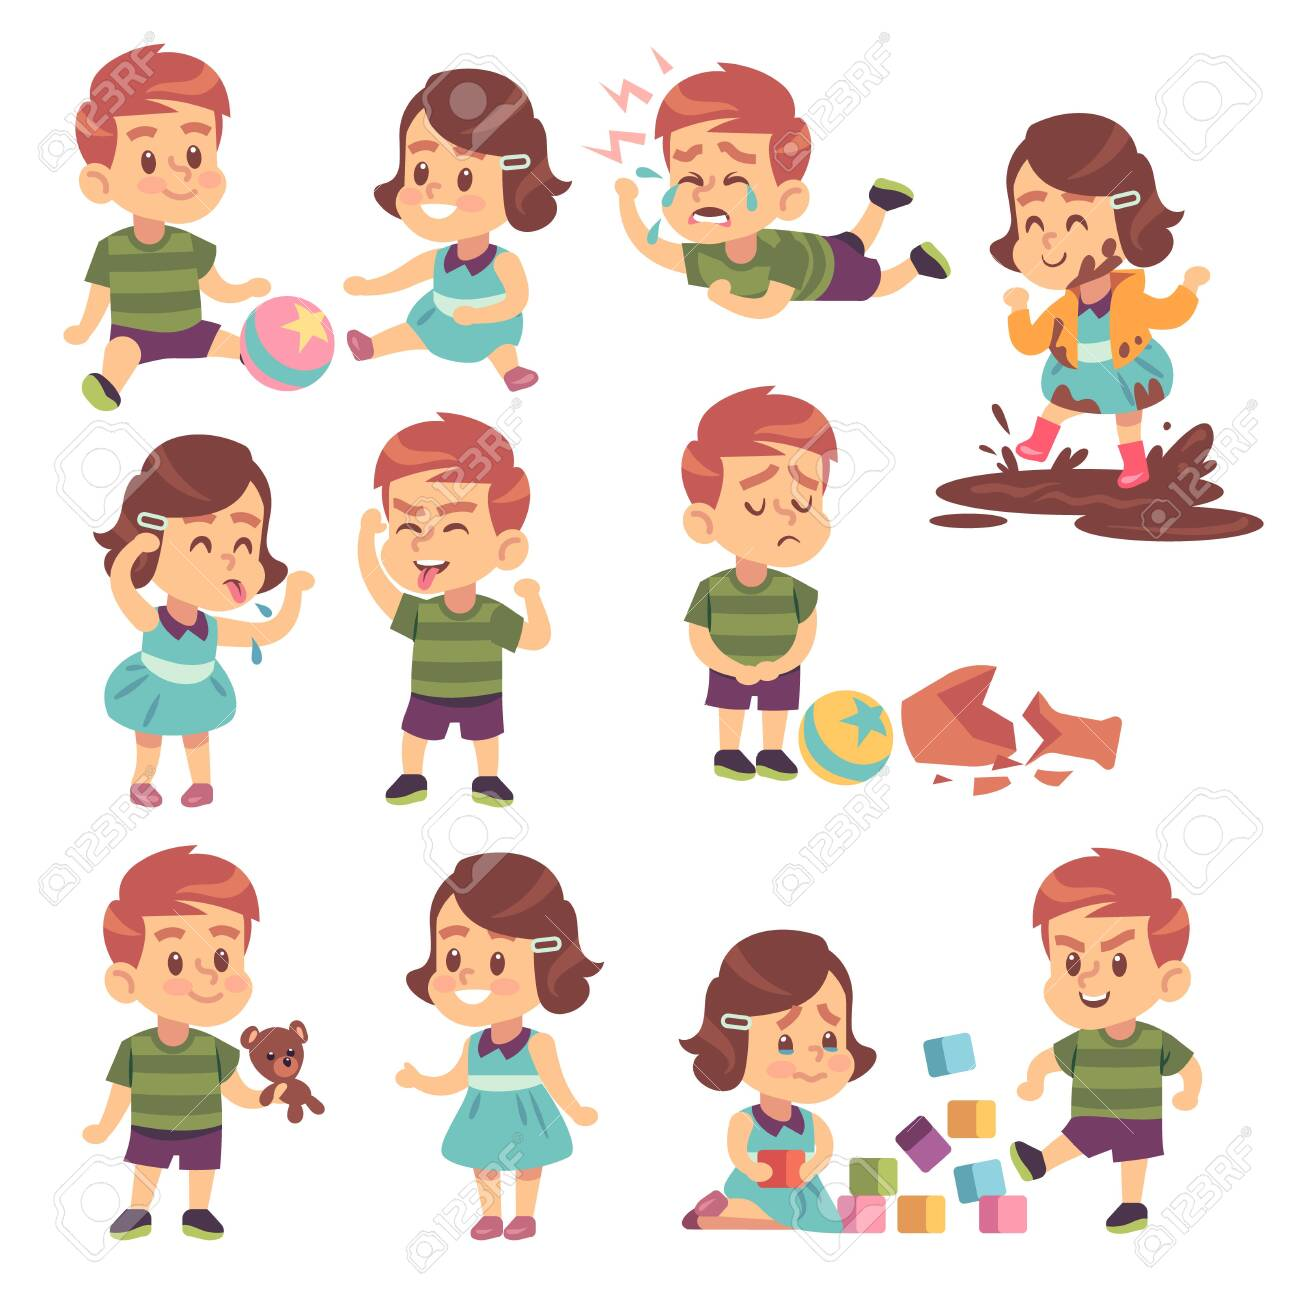 Good and bad kids. Playing peacefully and fighting, naughty and obedient children, conflict and funny boys and girls isolated cartoon vector child characters - 143461062